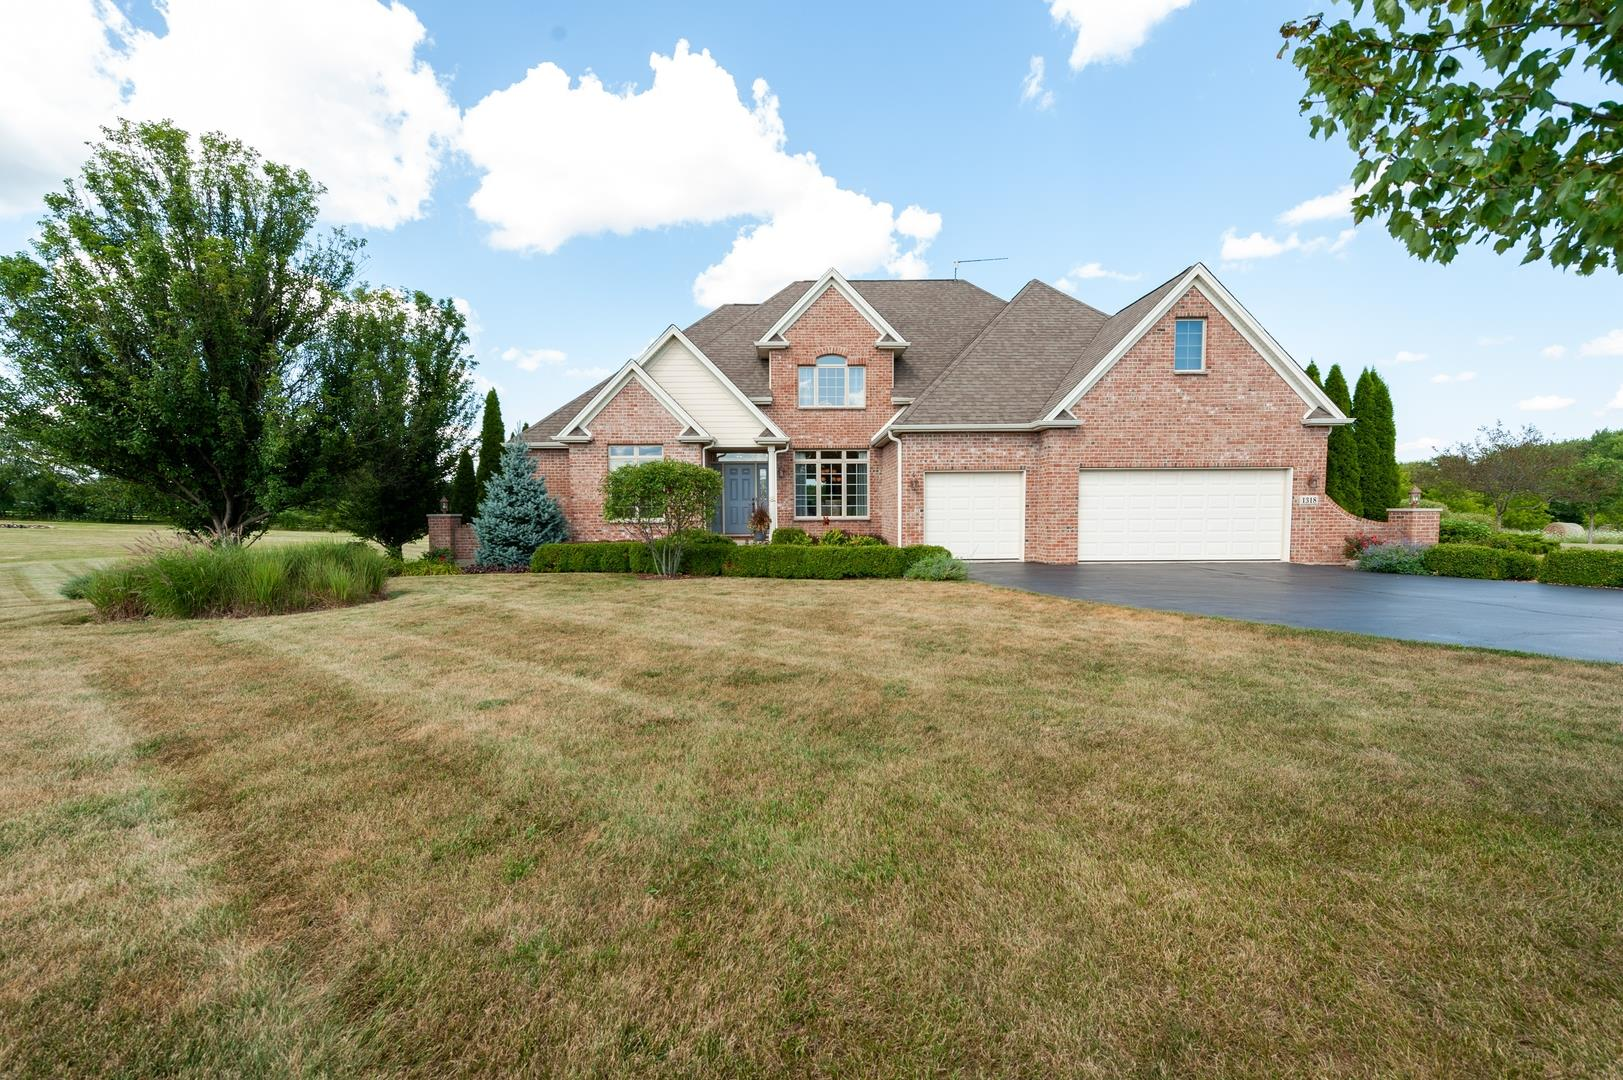 1318 SAVANNAH Lane, Woodstock, IL 60098 - #: 10820623